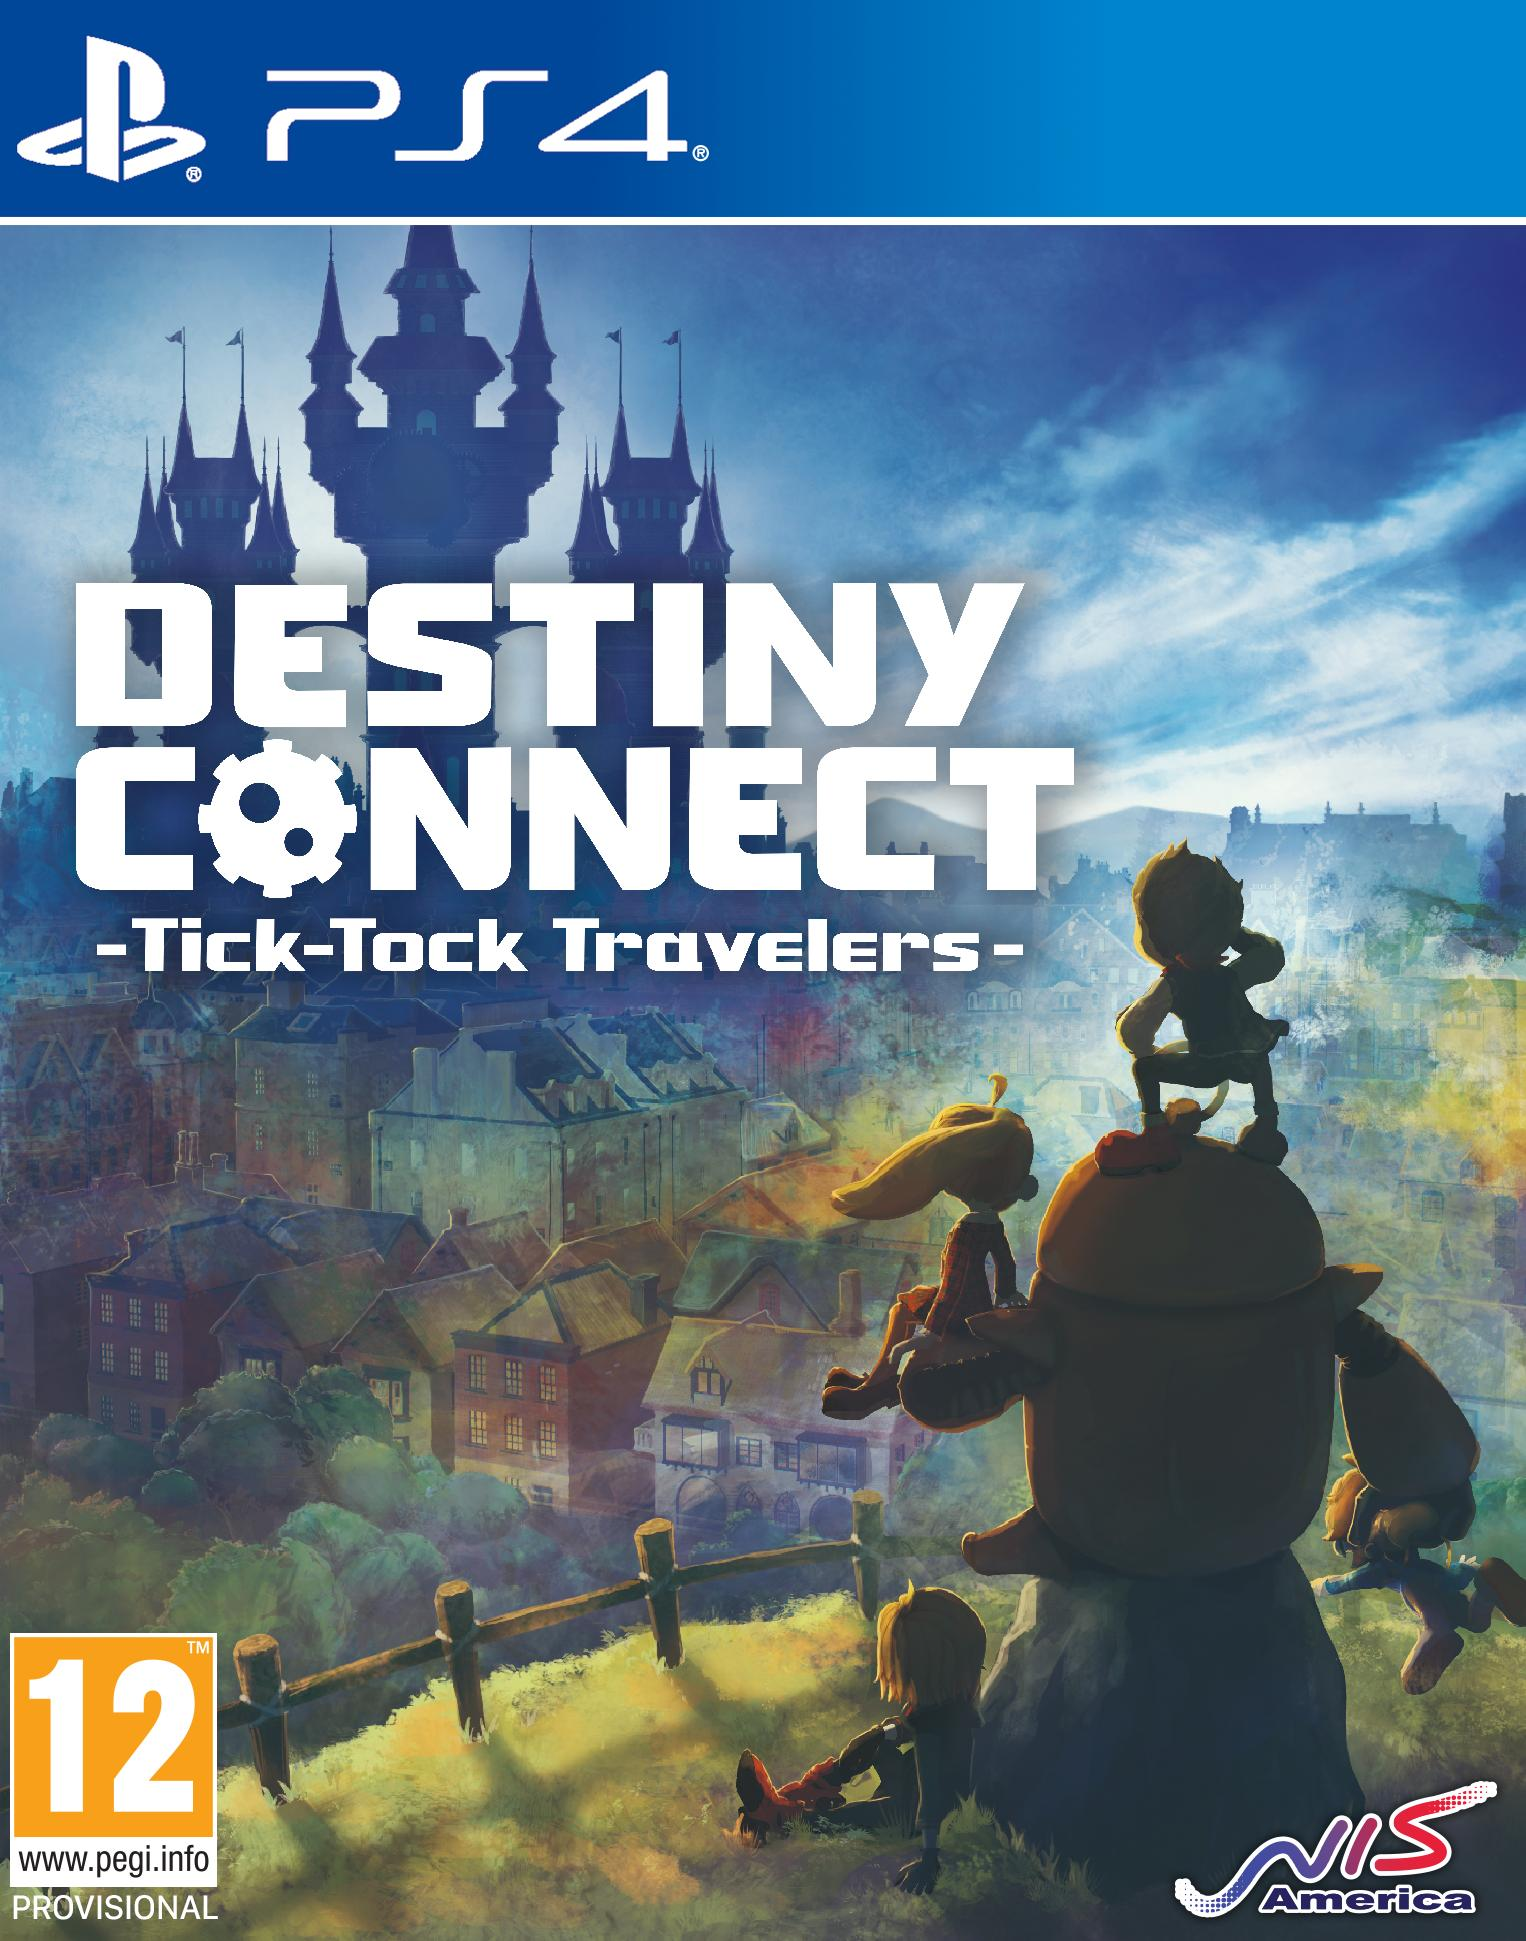 TEST : Destiny Connect: Tick-Tock Travelers, un J-RPG classique mais attachant blog jeux video lageekroom